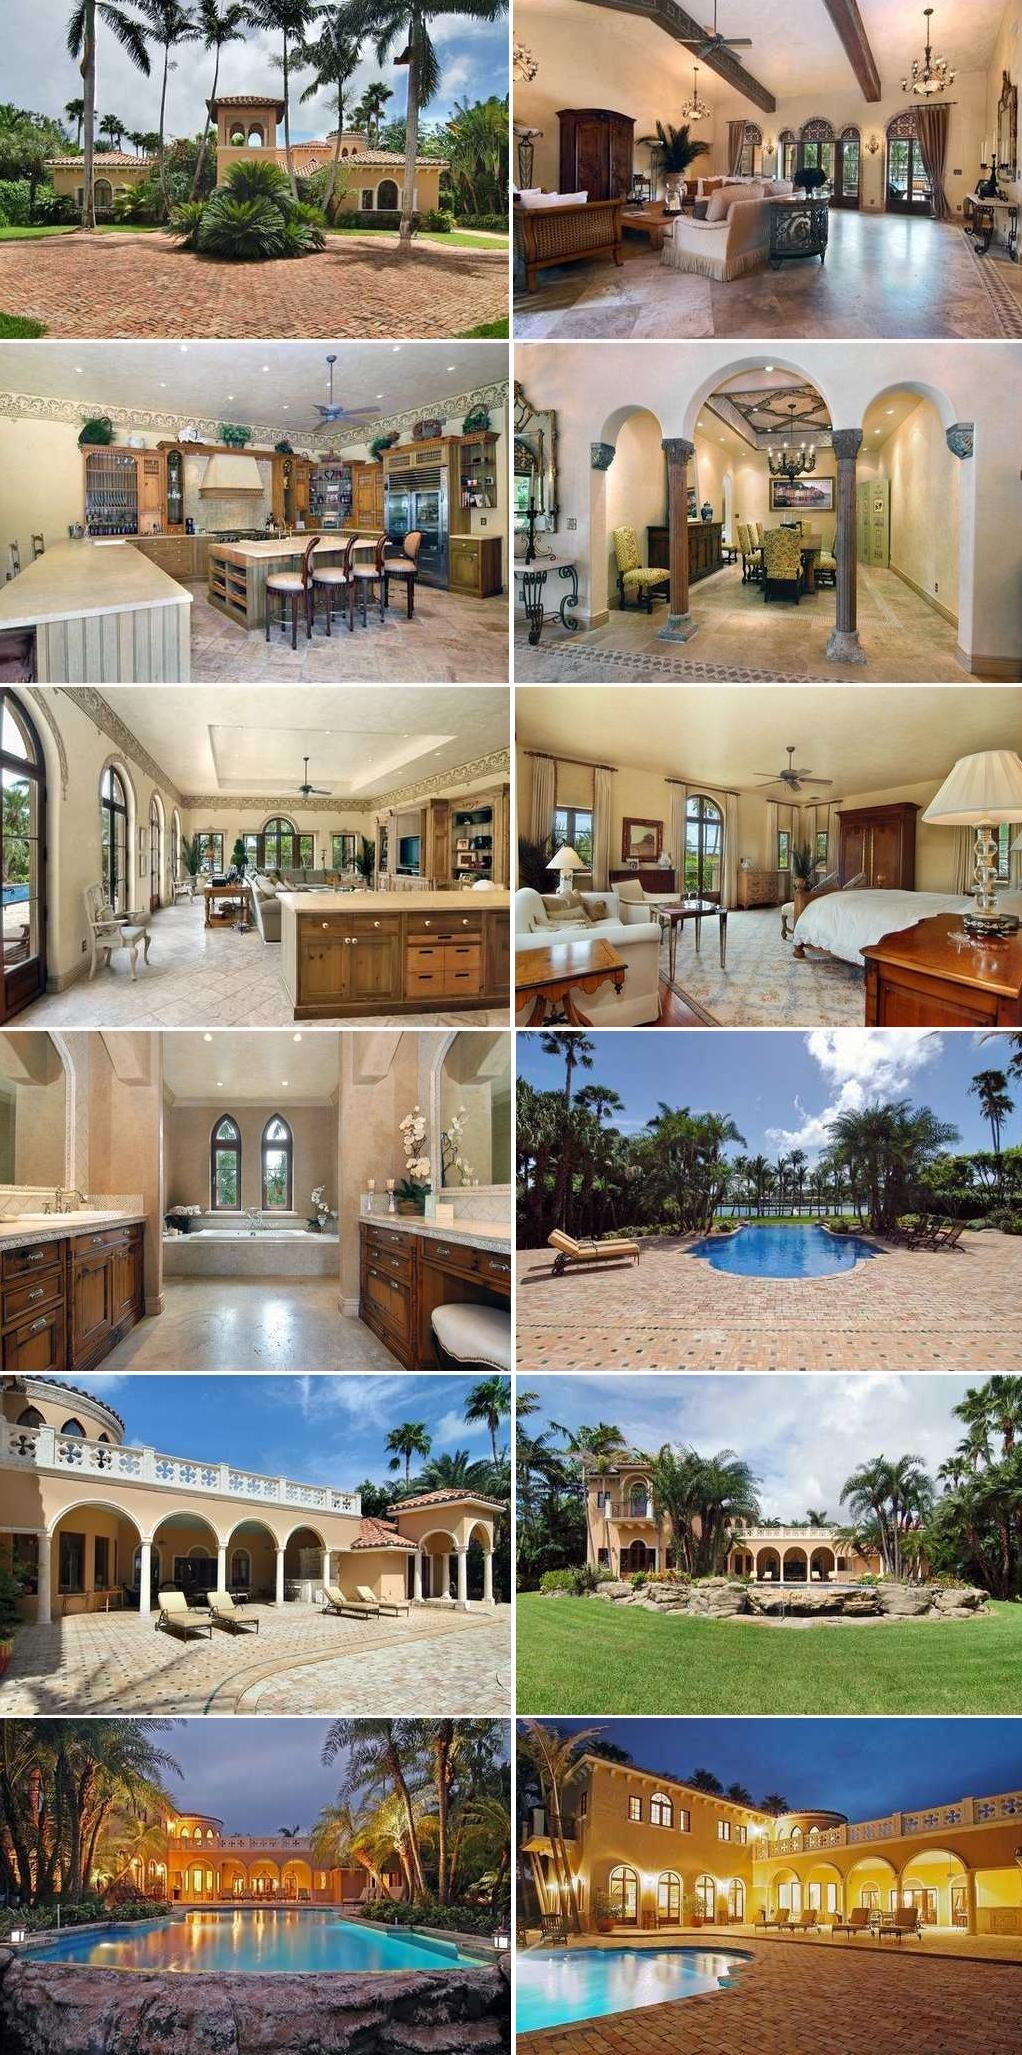 University of Louisville head coach Rick Pitino's house is for sale in Indian Creek, Florida